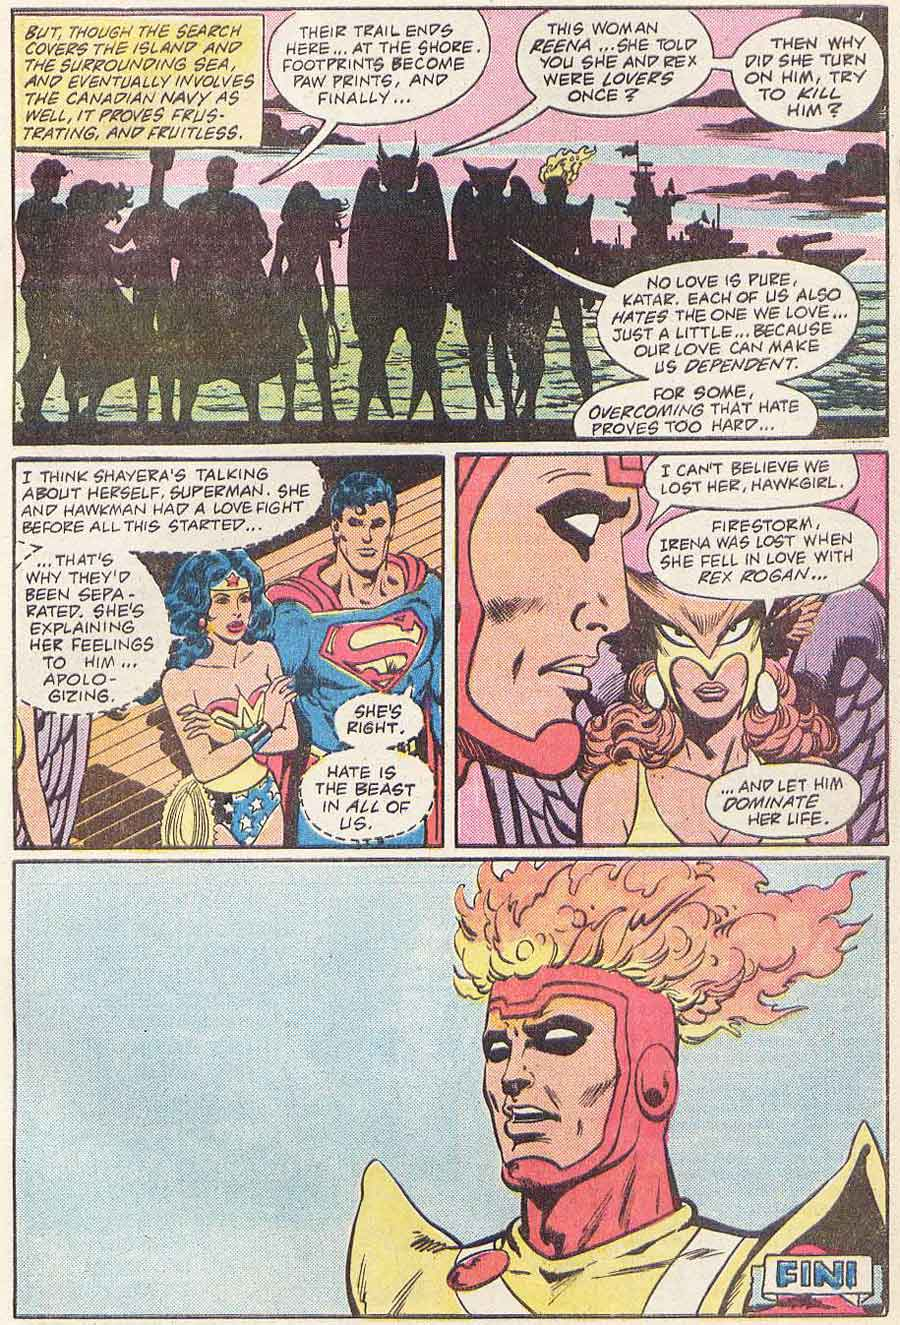 Justice League of America #223 by Gerry Conway, Chuck Patton and Romeo Tanghal